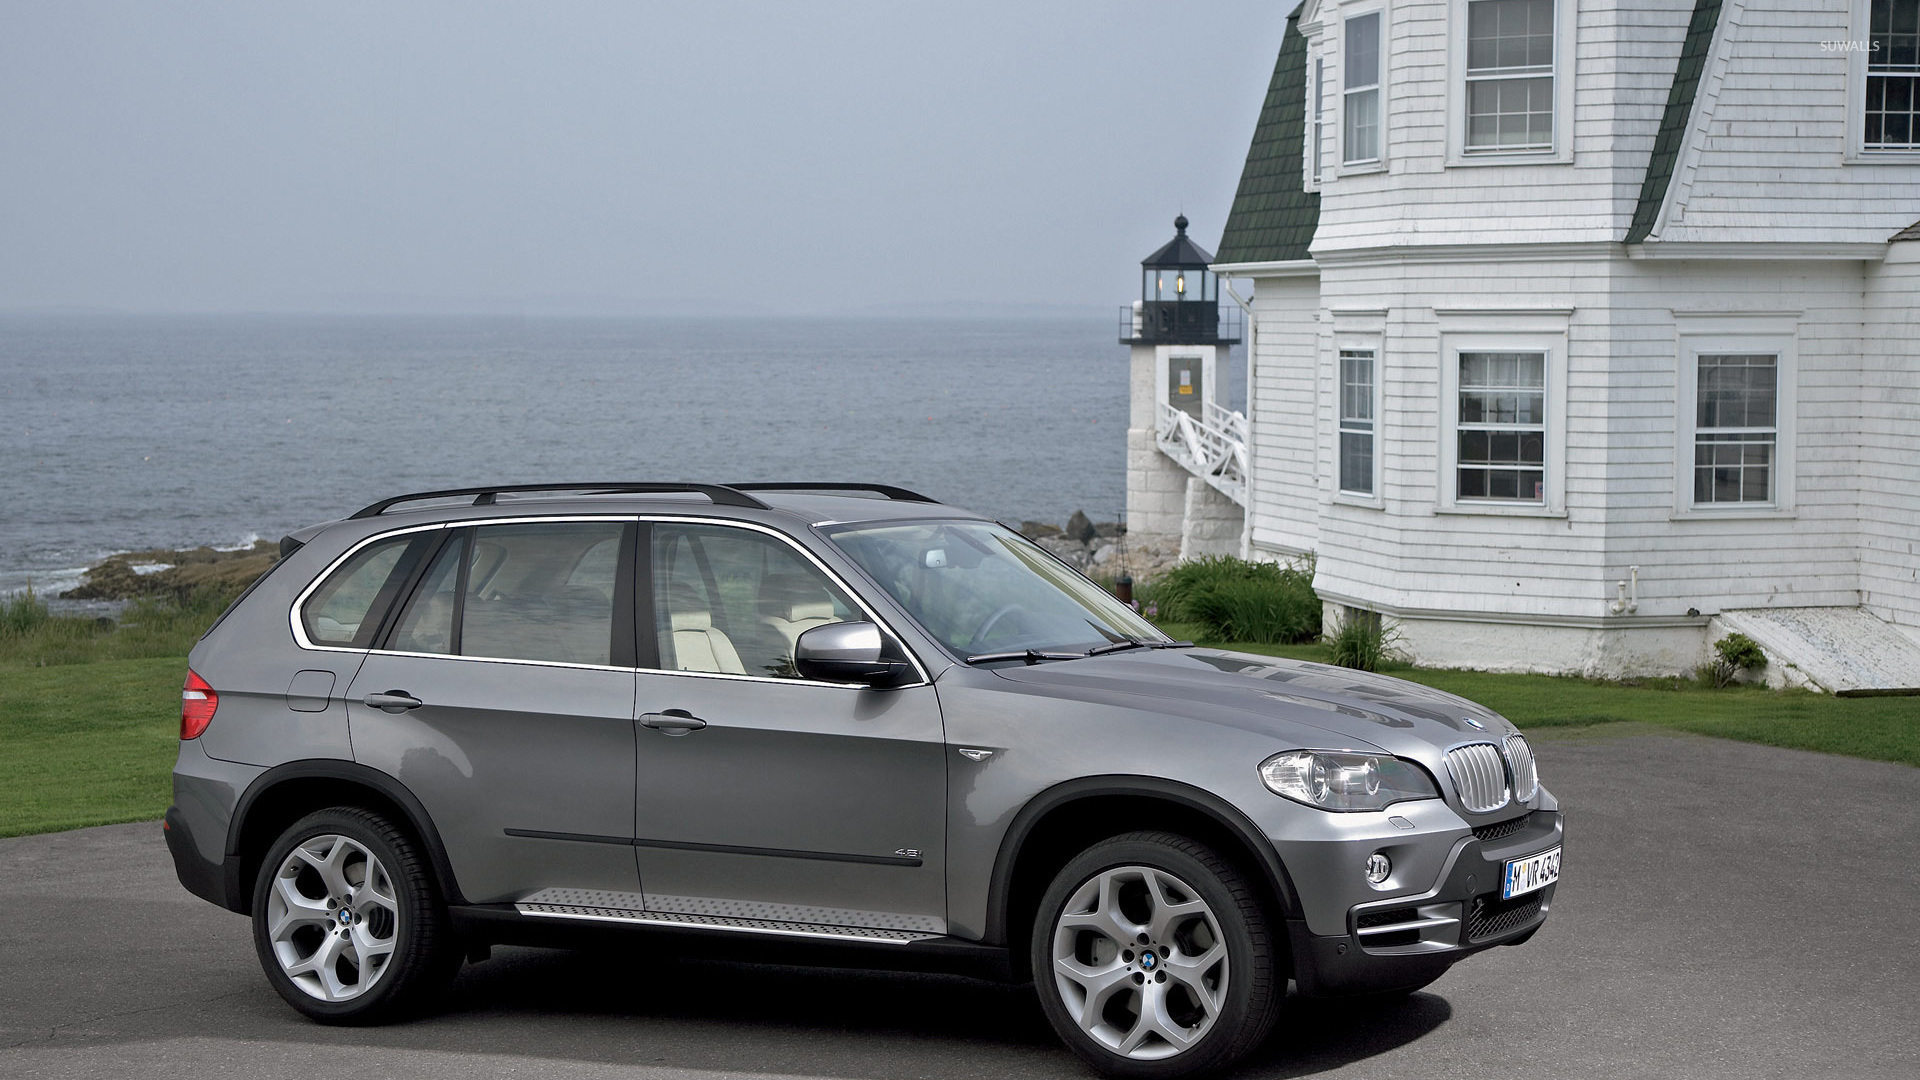 2007 bmw x5 wallpaper car wallpapers 3169. Black Bedroom Furniture Sets. Home Design Ideas